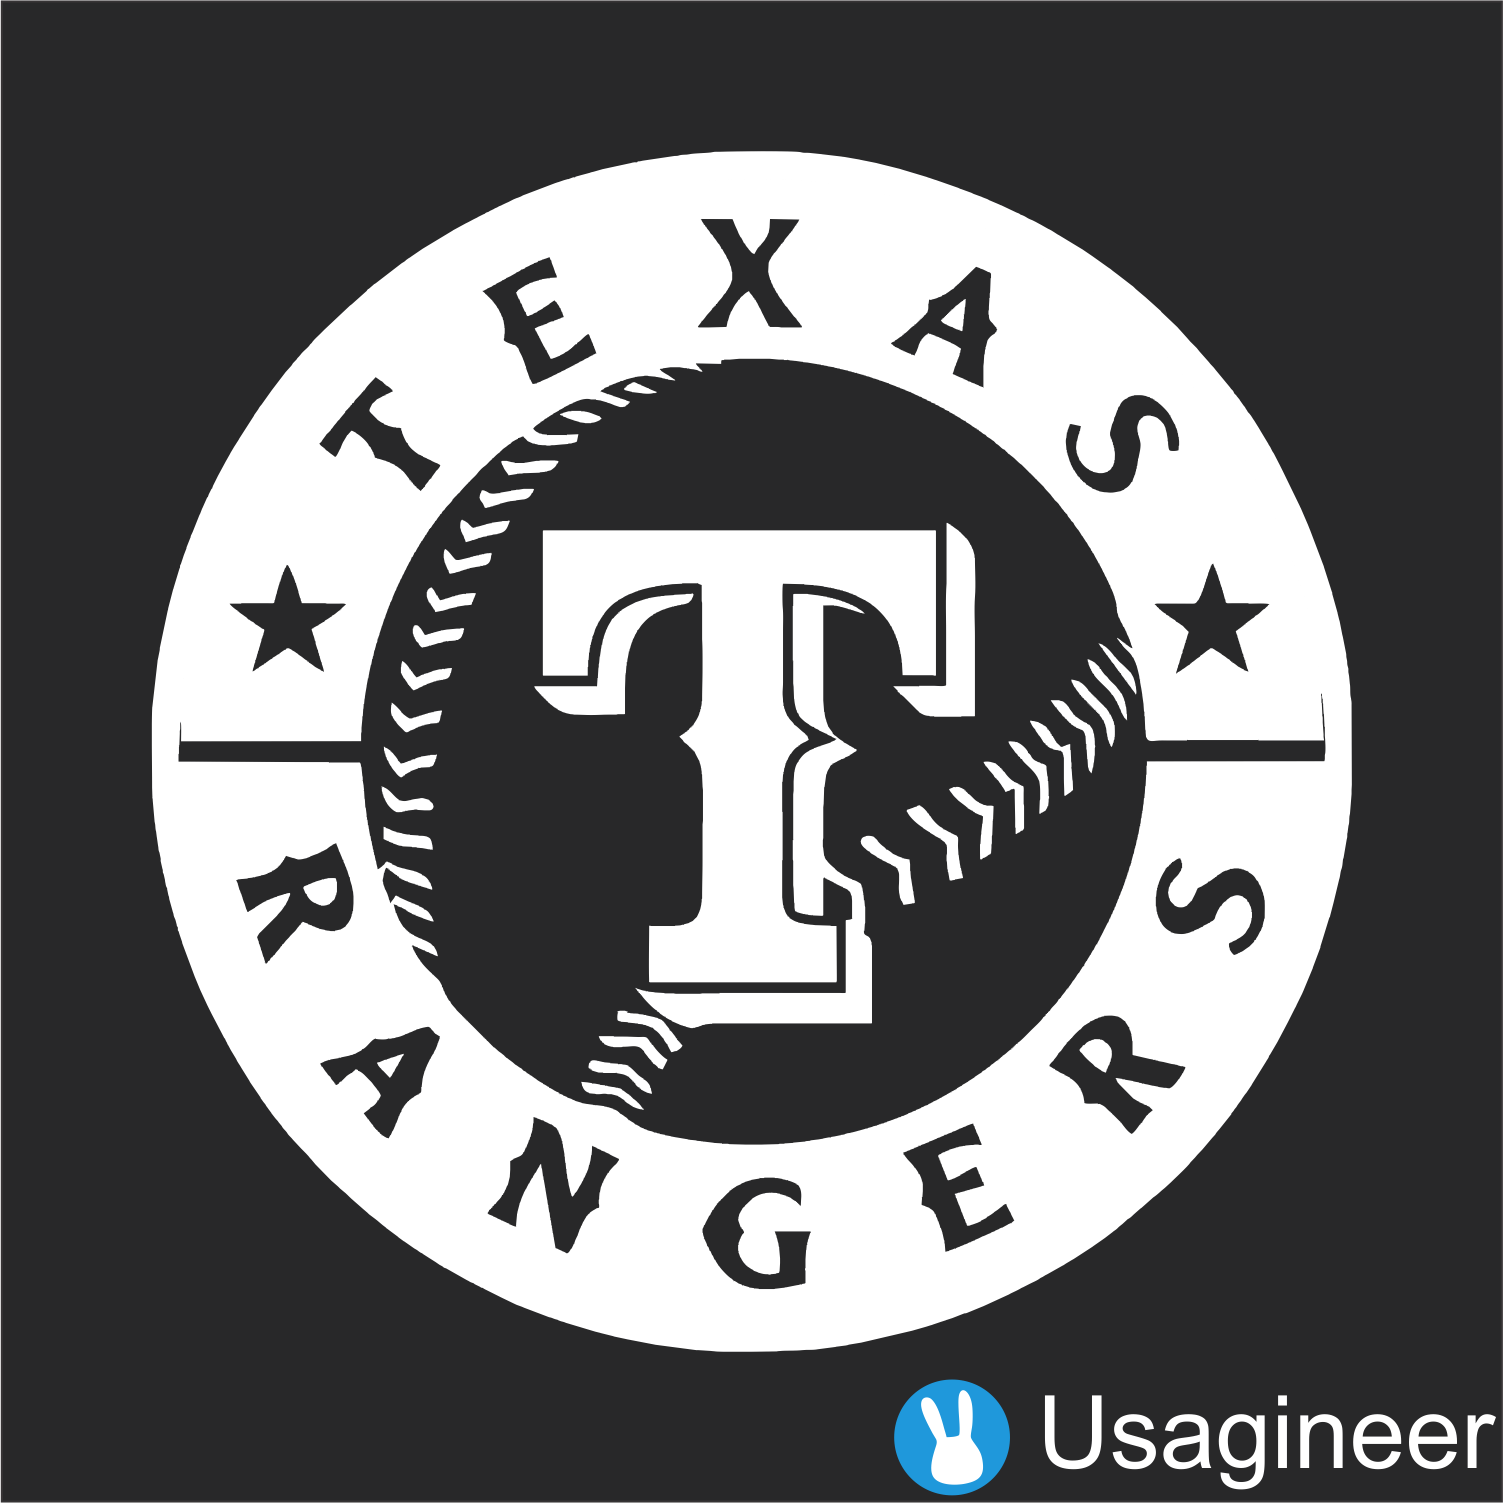 Texas rangers mlb sports vinyl decal sticker have to buy - Texas rangers logo images ...